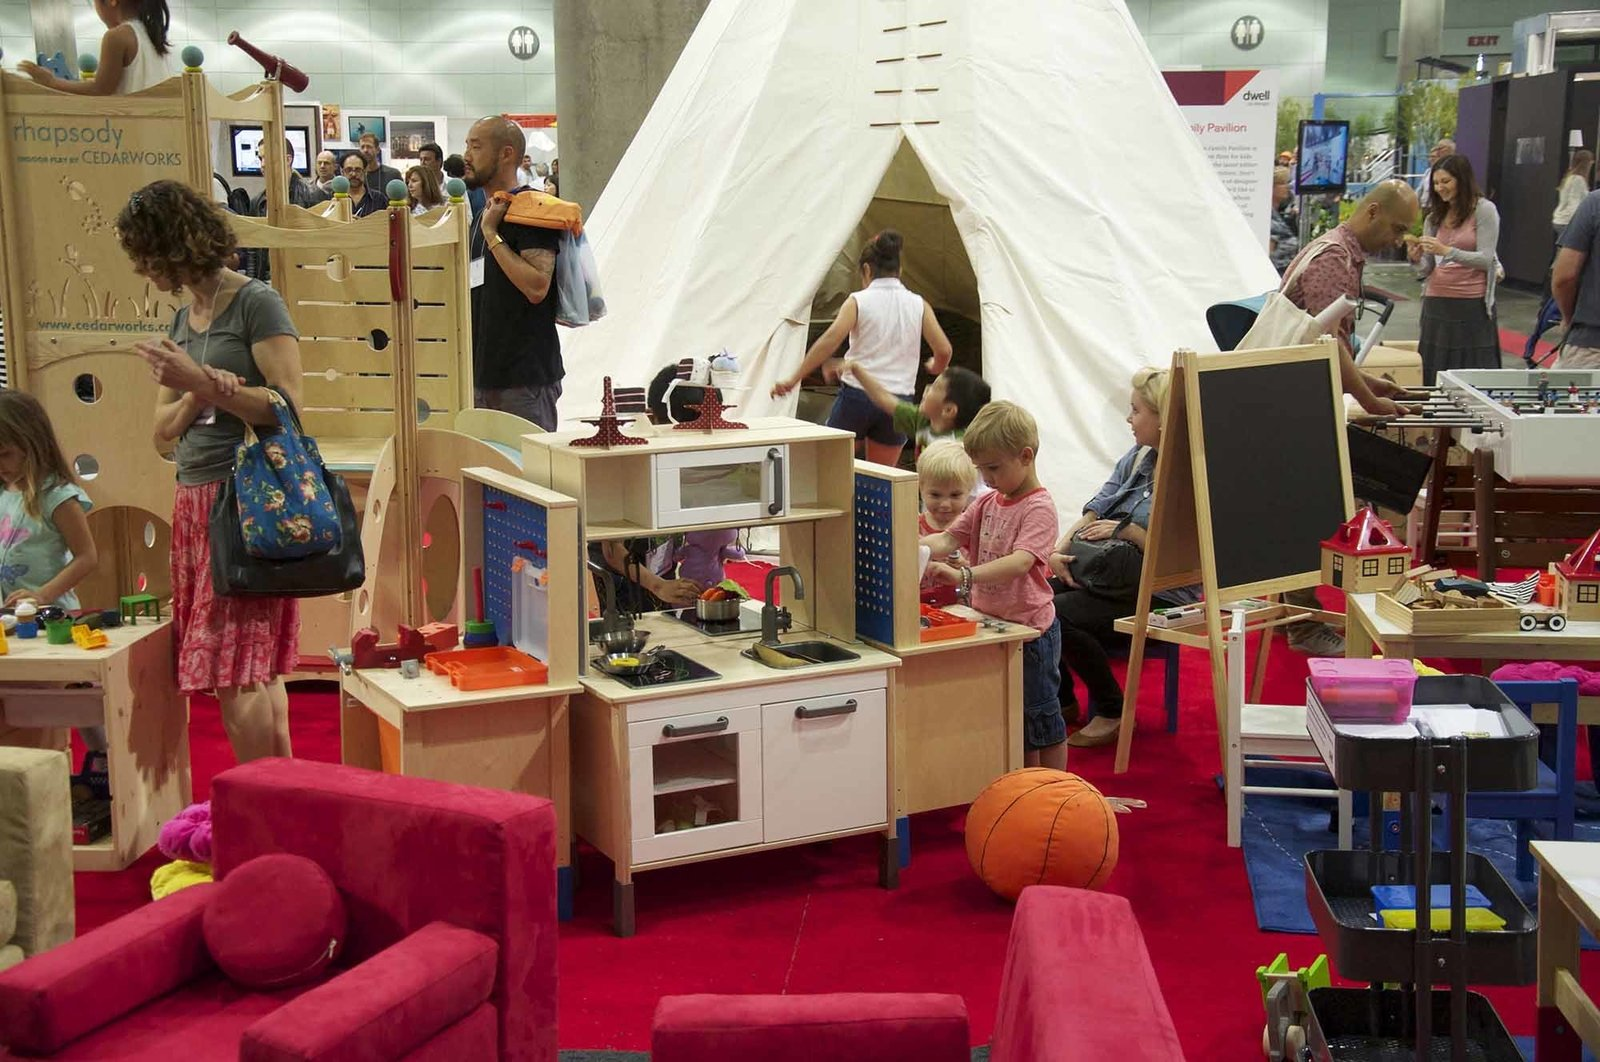 Indoor and outdoor furniture company Grandin Road brought two high-design teepees to the Dwell Outdoor area, and another to the Modern Family Pavilion.  Explore the Modern Family Pavilion at Dwell on Design 2015 by Dwell